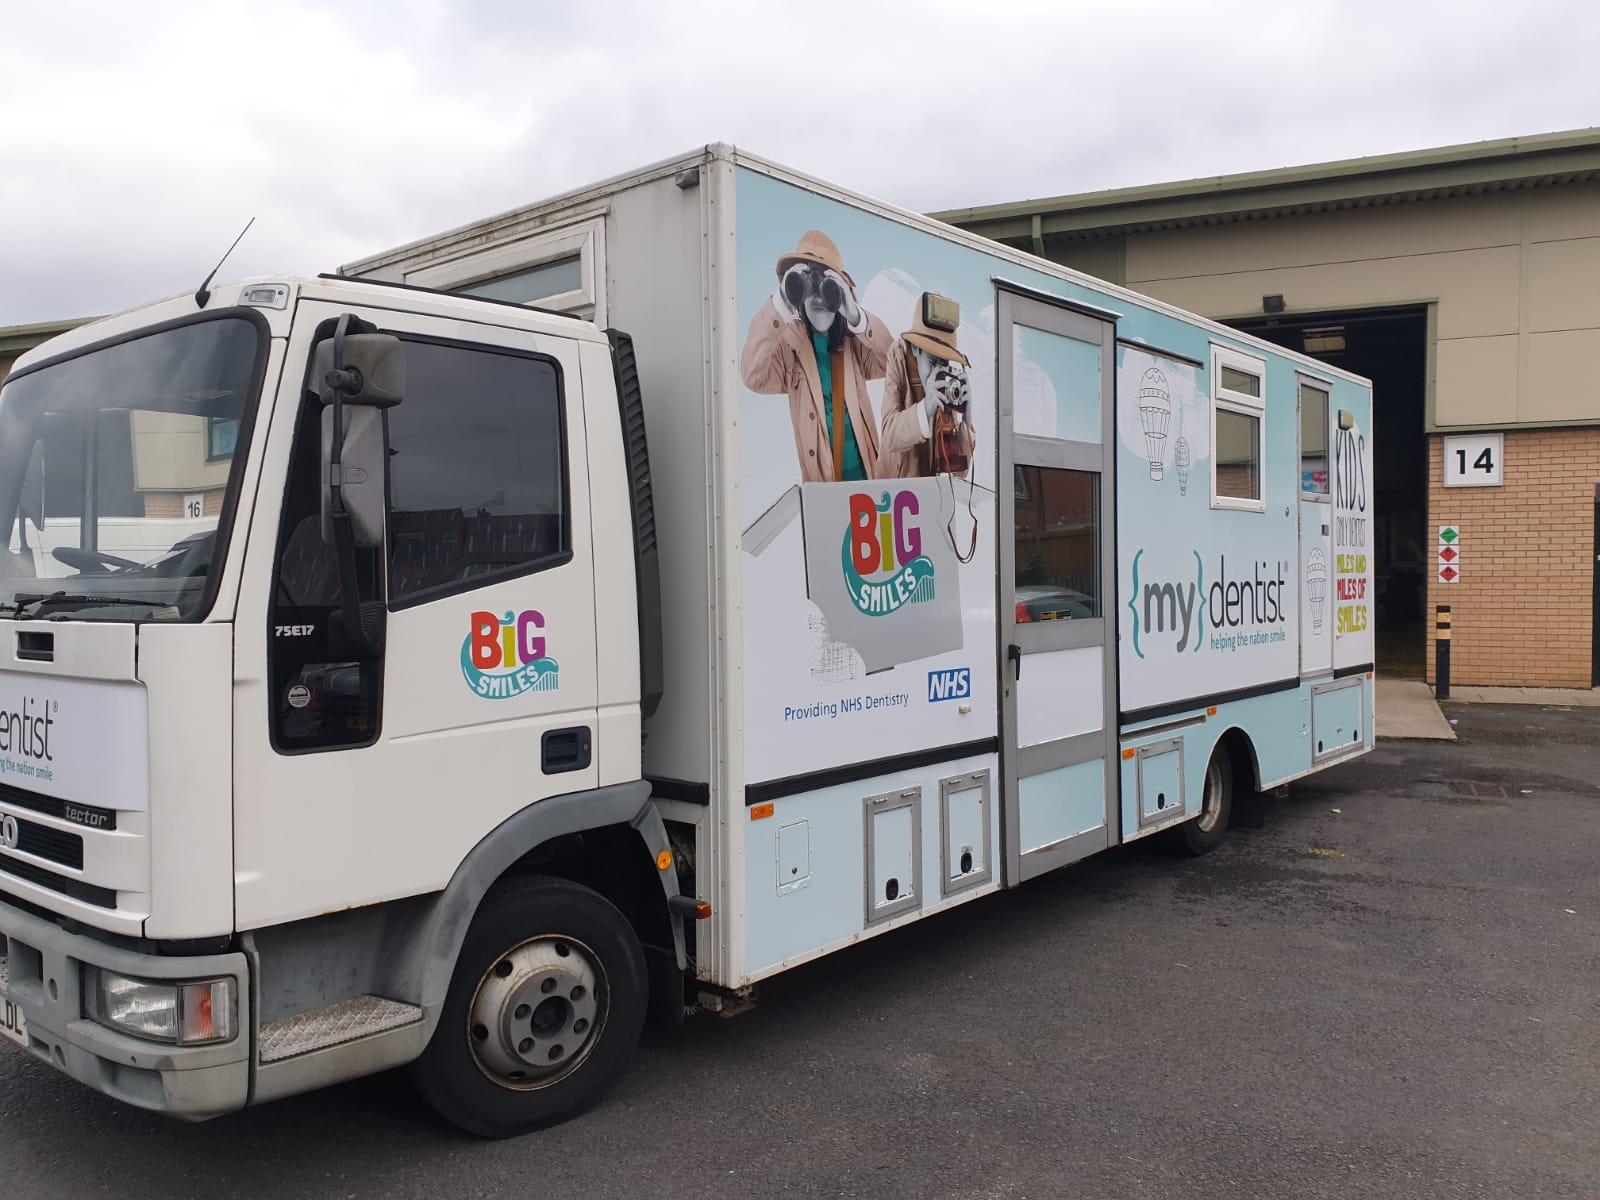 My Dentist - Vehicle Wrapping | Principle Signs & Graphics